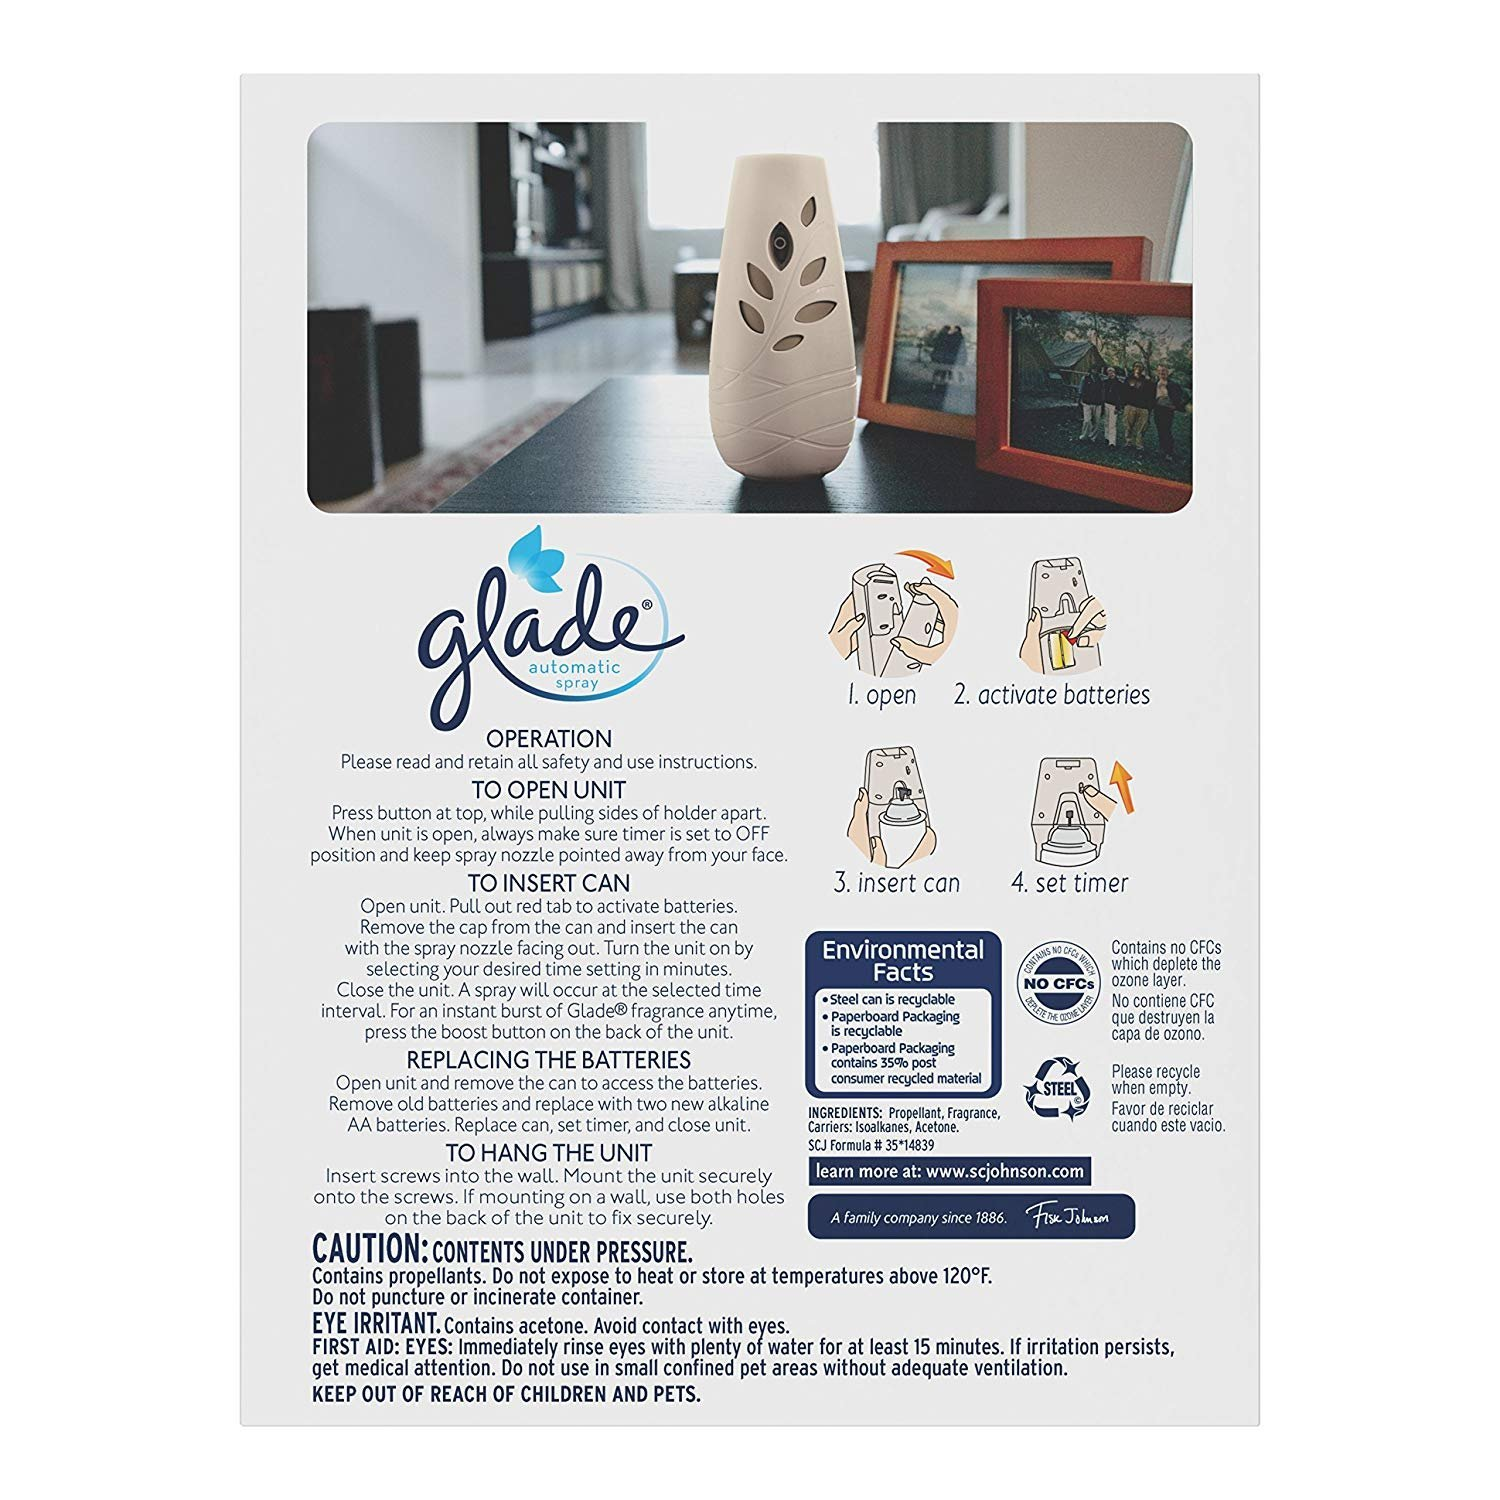 Glade Automatic Spray Air Freshener Hawaiian Breeze Starter (6.2 oz) (Pack - 6) by Glade (Image #2)